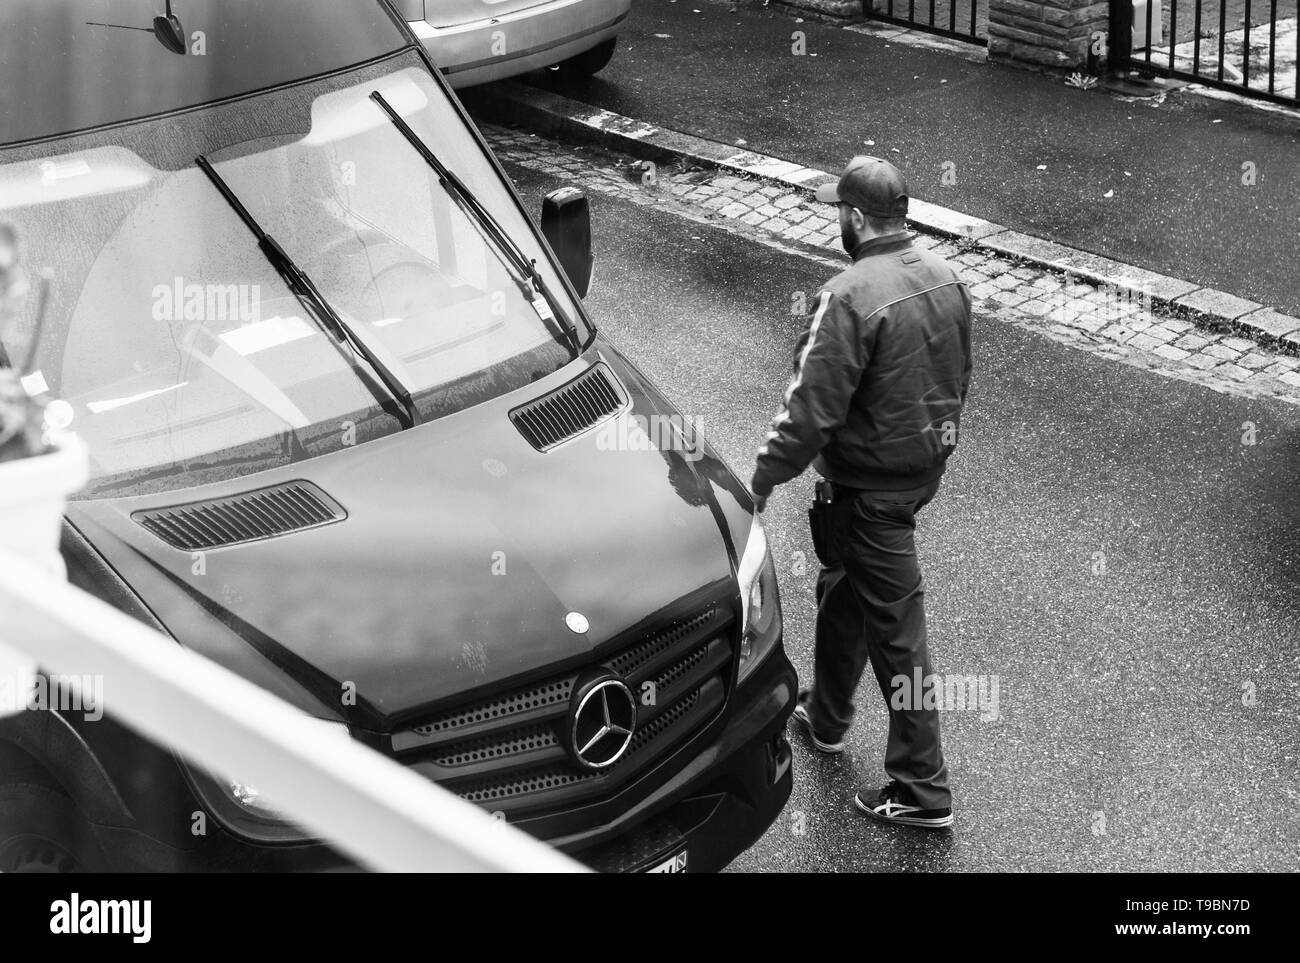 Paris, France - Apr 10, 2019: Black and white image of elevated view of UPS employee walking on the street toward his brown van after delivering a parcel Stock Photo